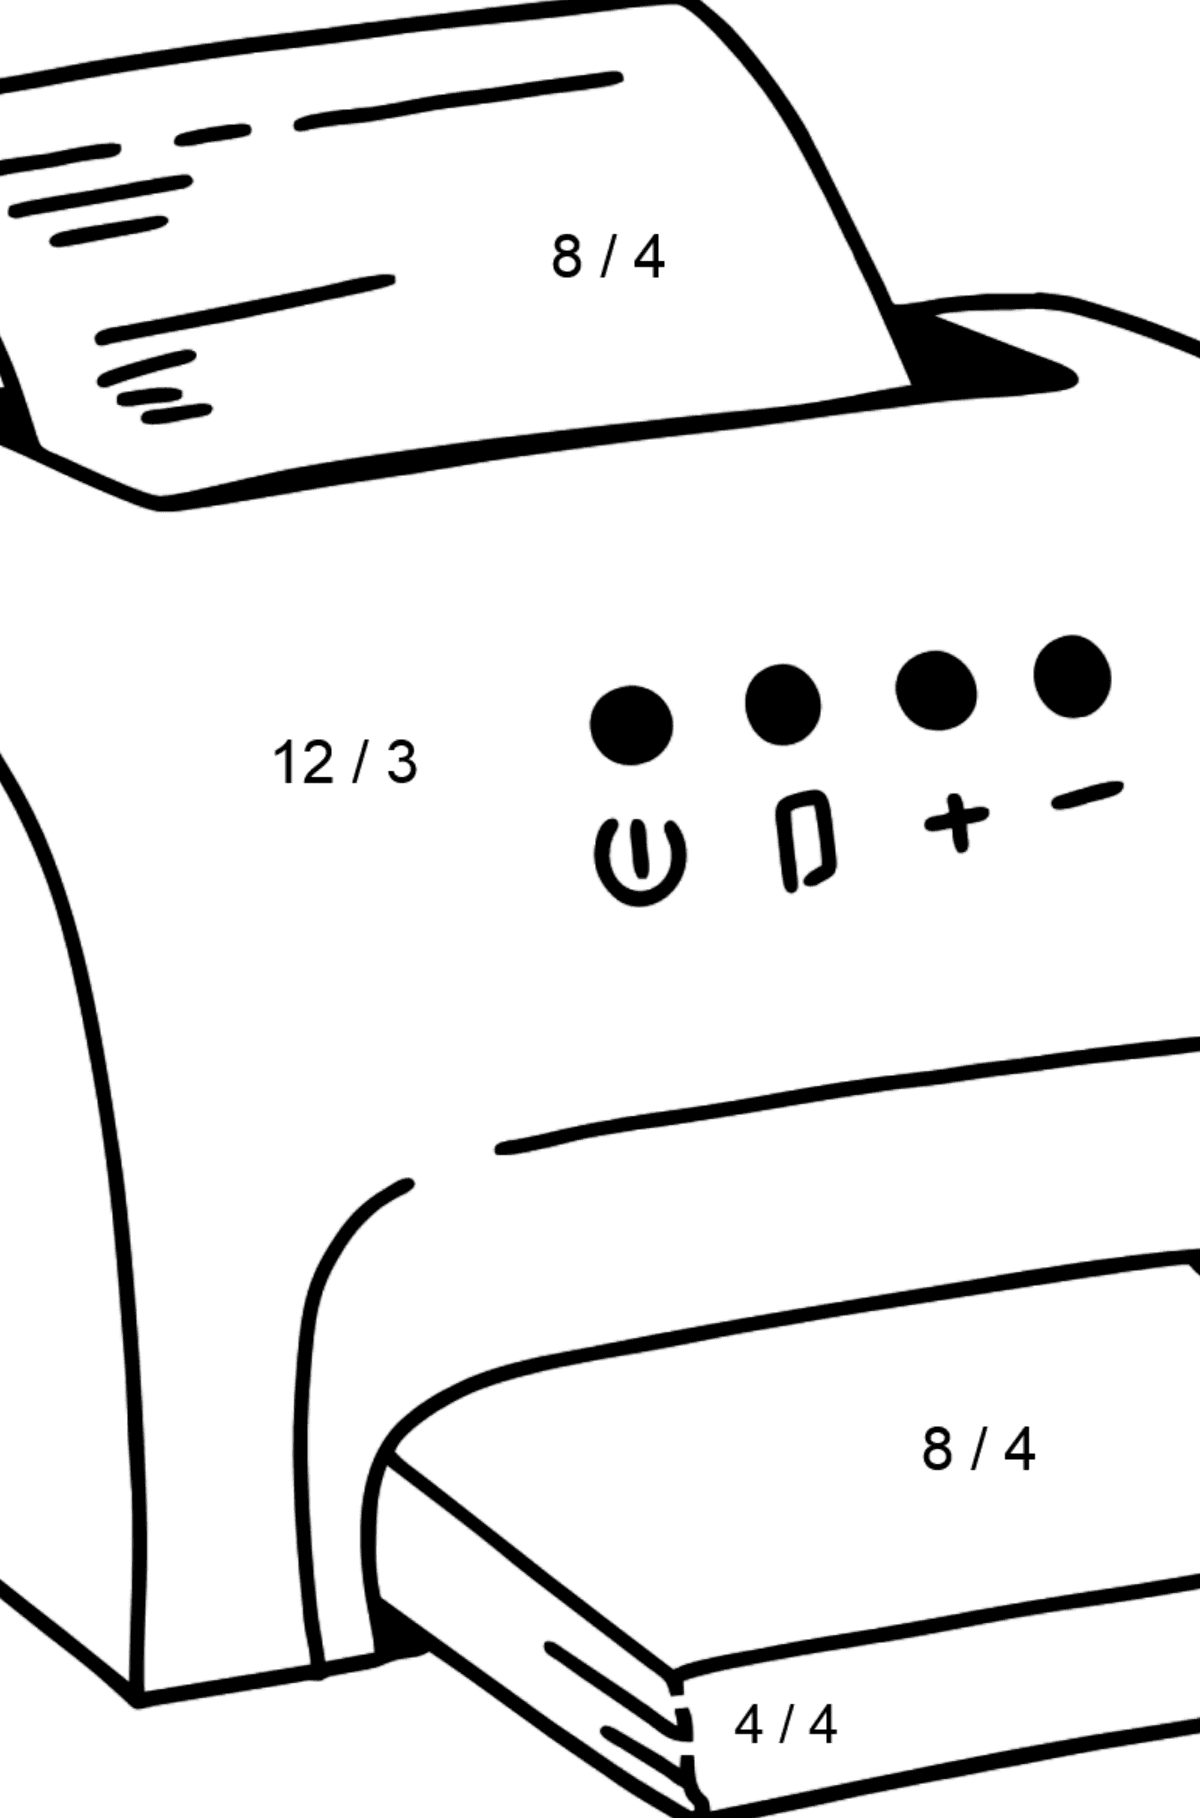 Printer coloring page - Math Coloring - Division for Kids